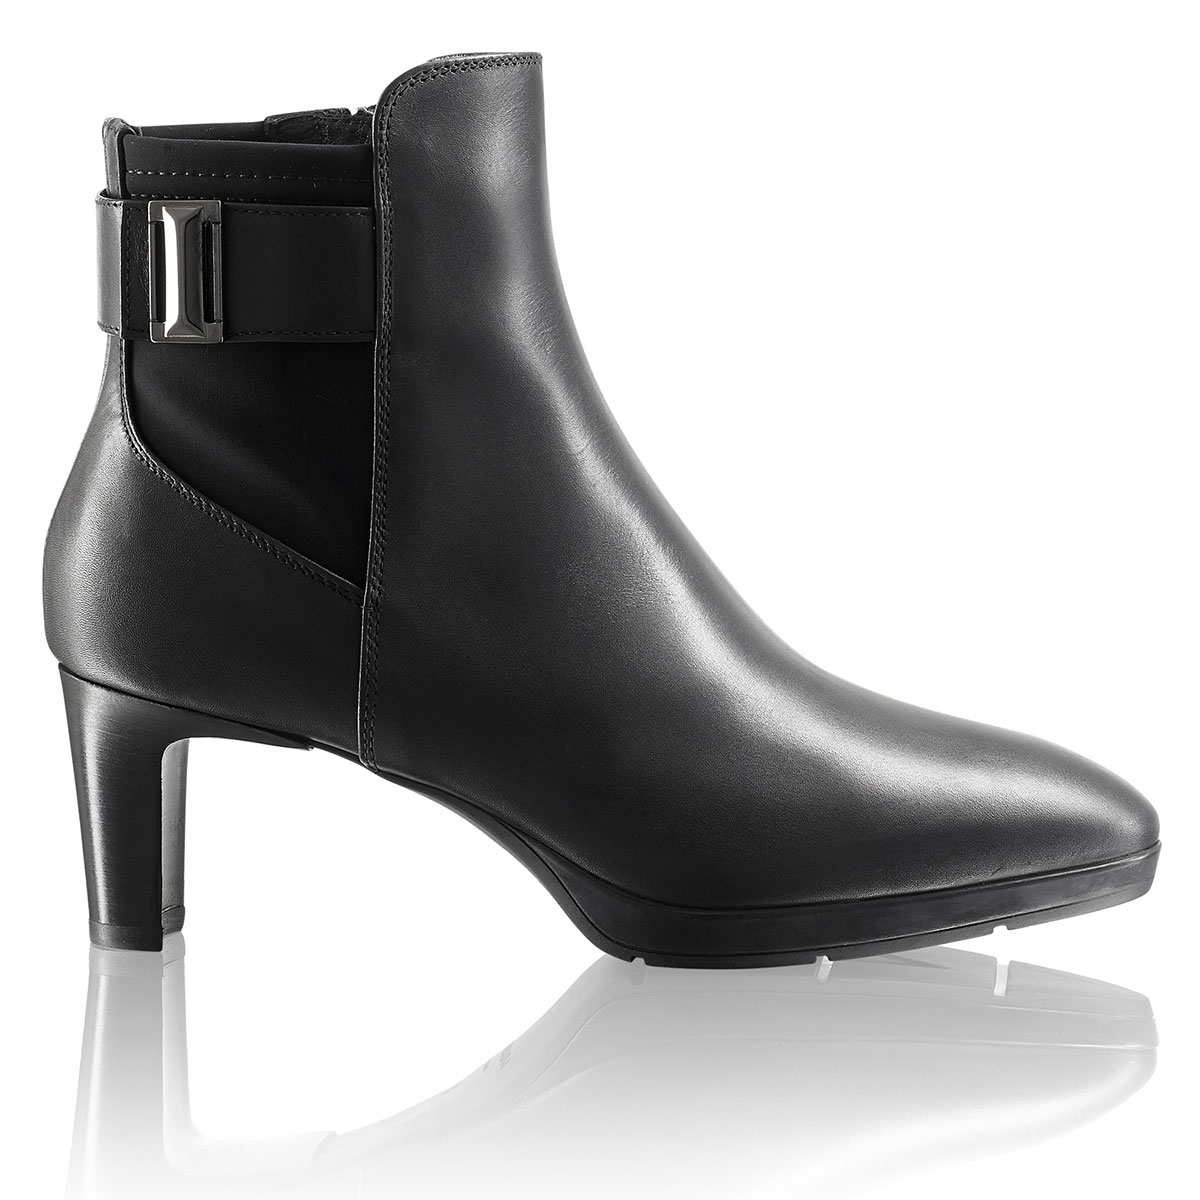 Russell and Bromley DANNI DRY Mid Heel Ankle Boot